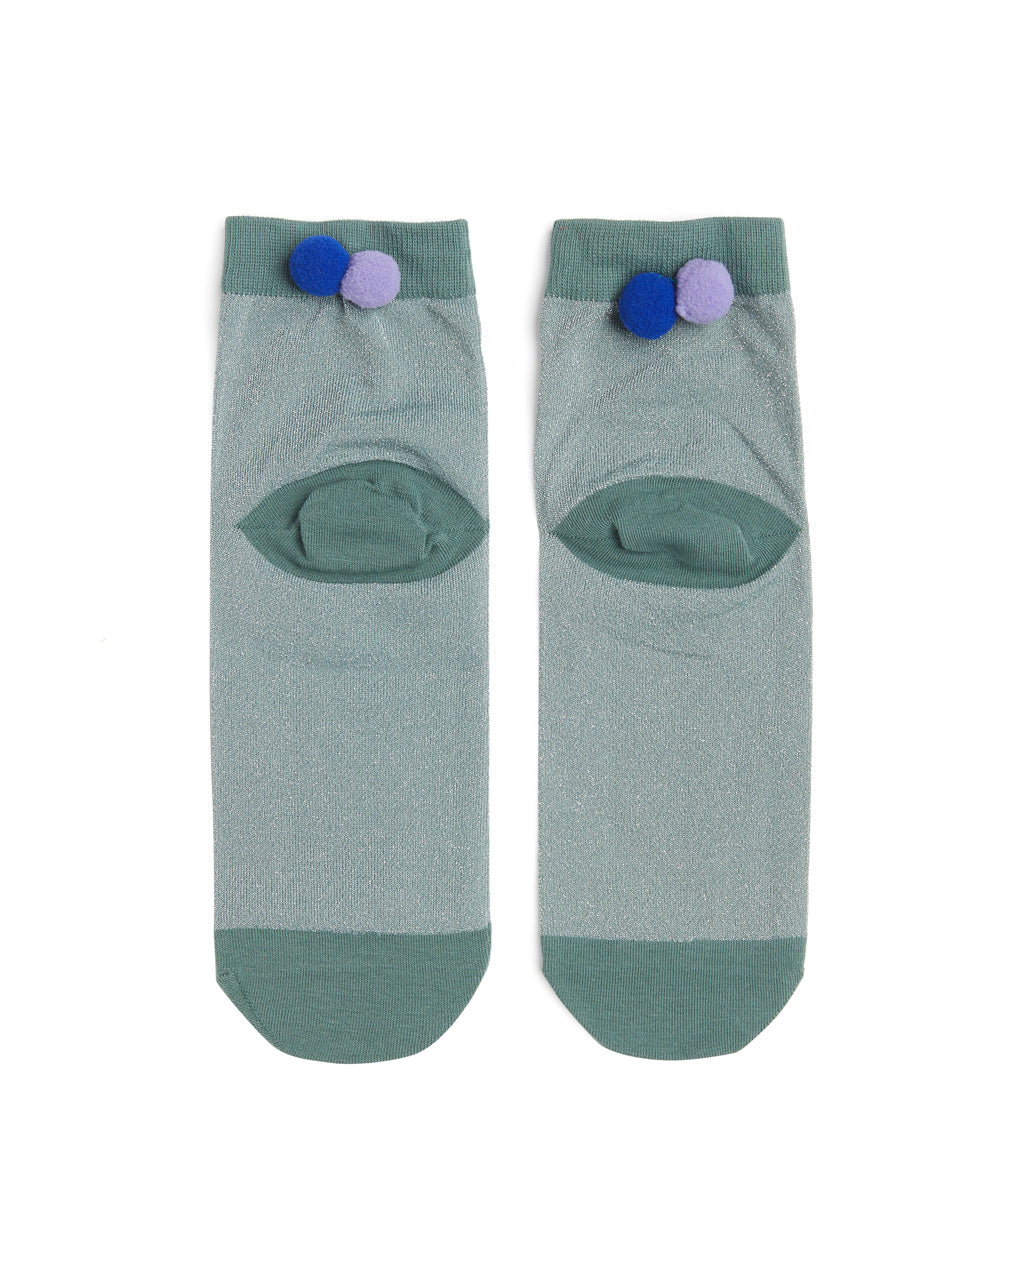 Flat shot of green tonal crew socks with purple pom poms on the back ankle.